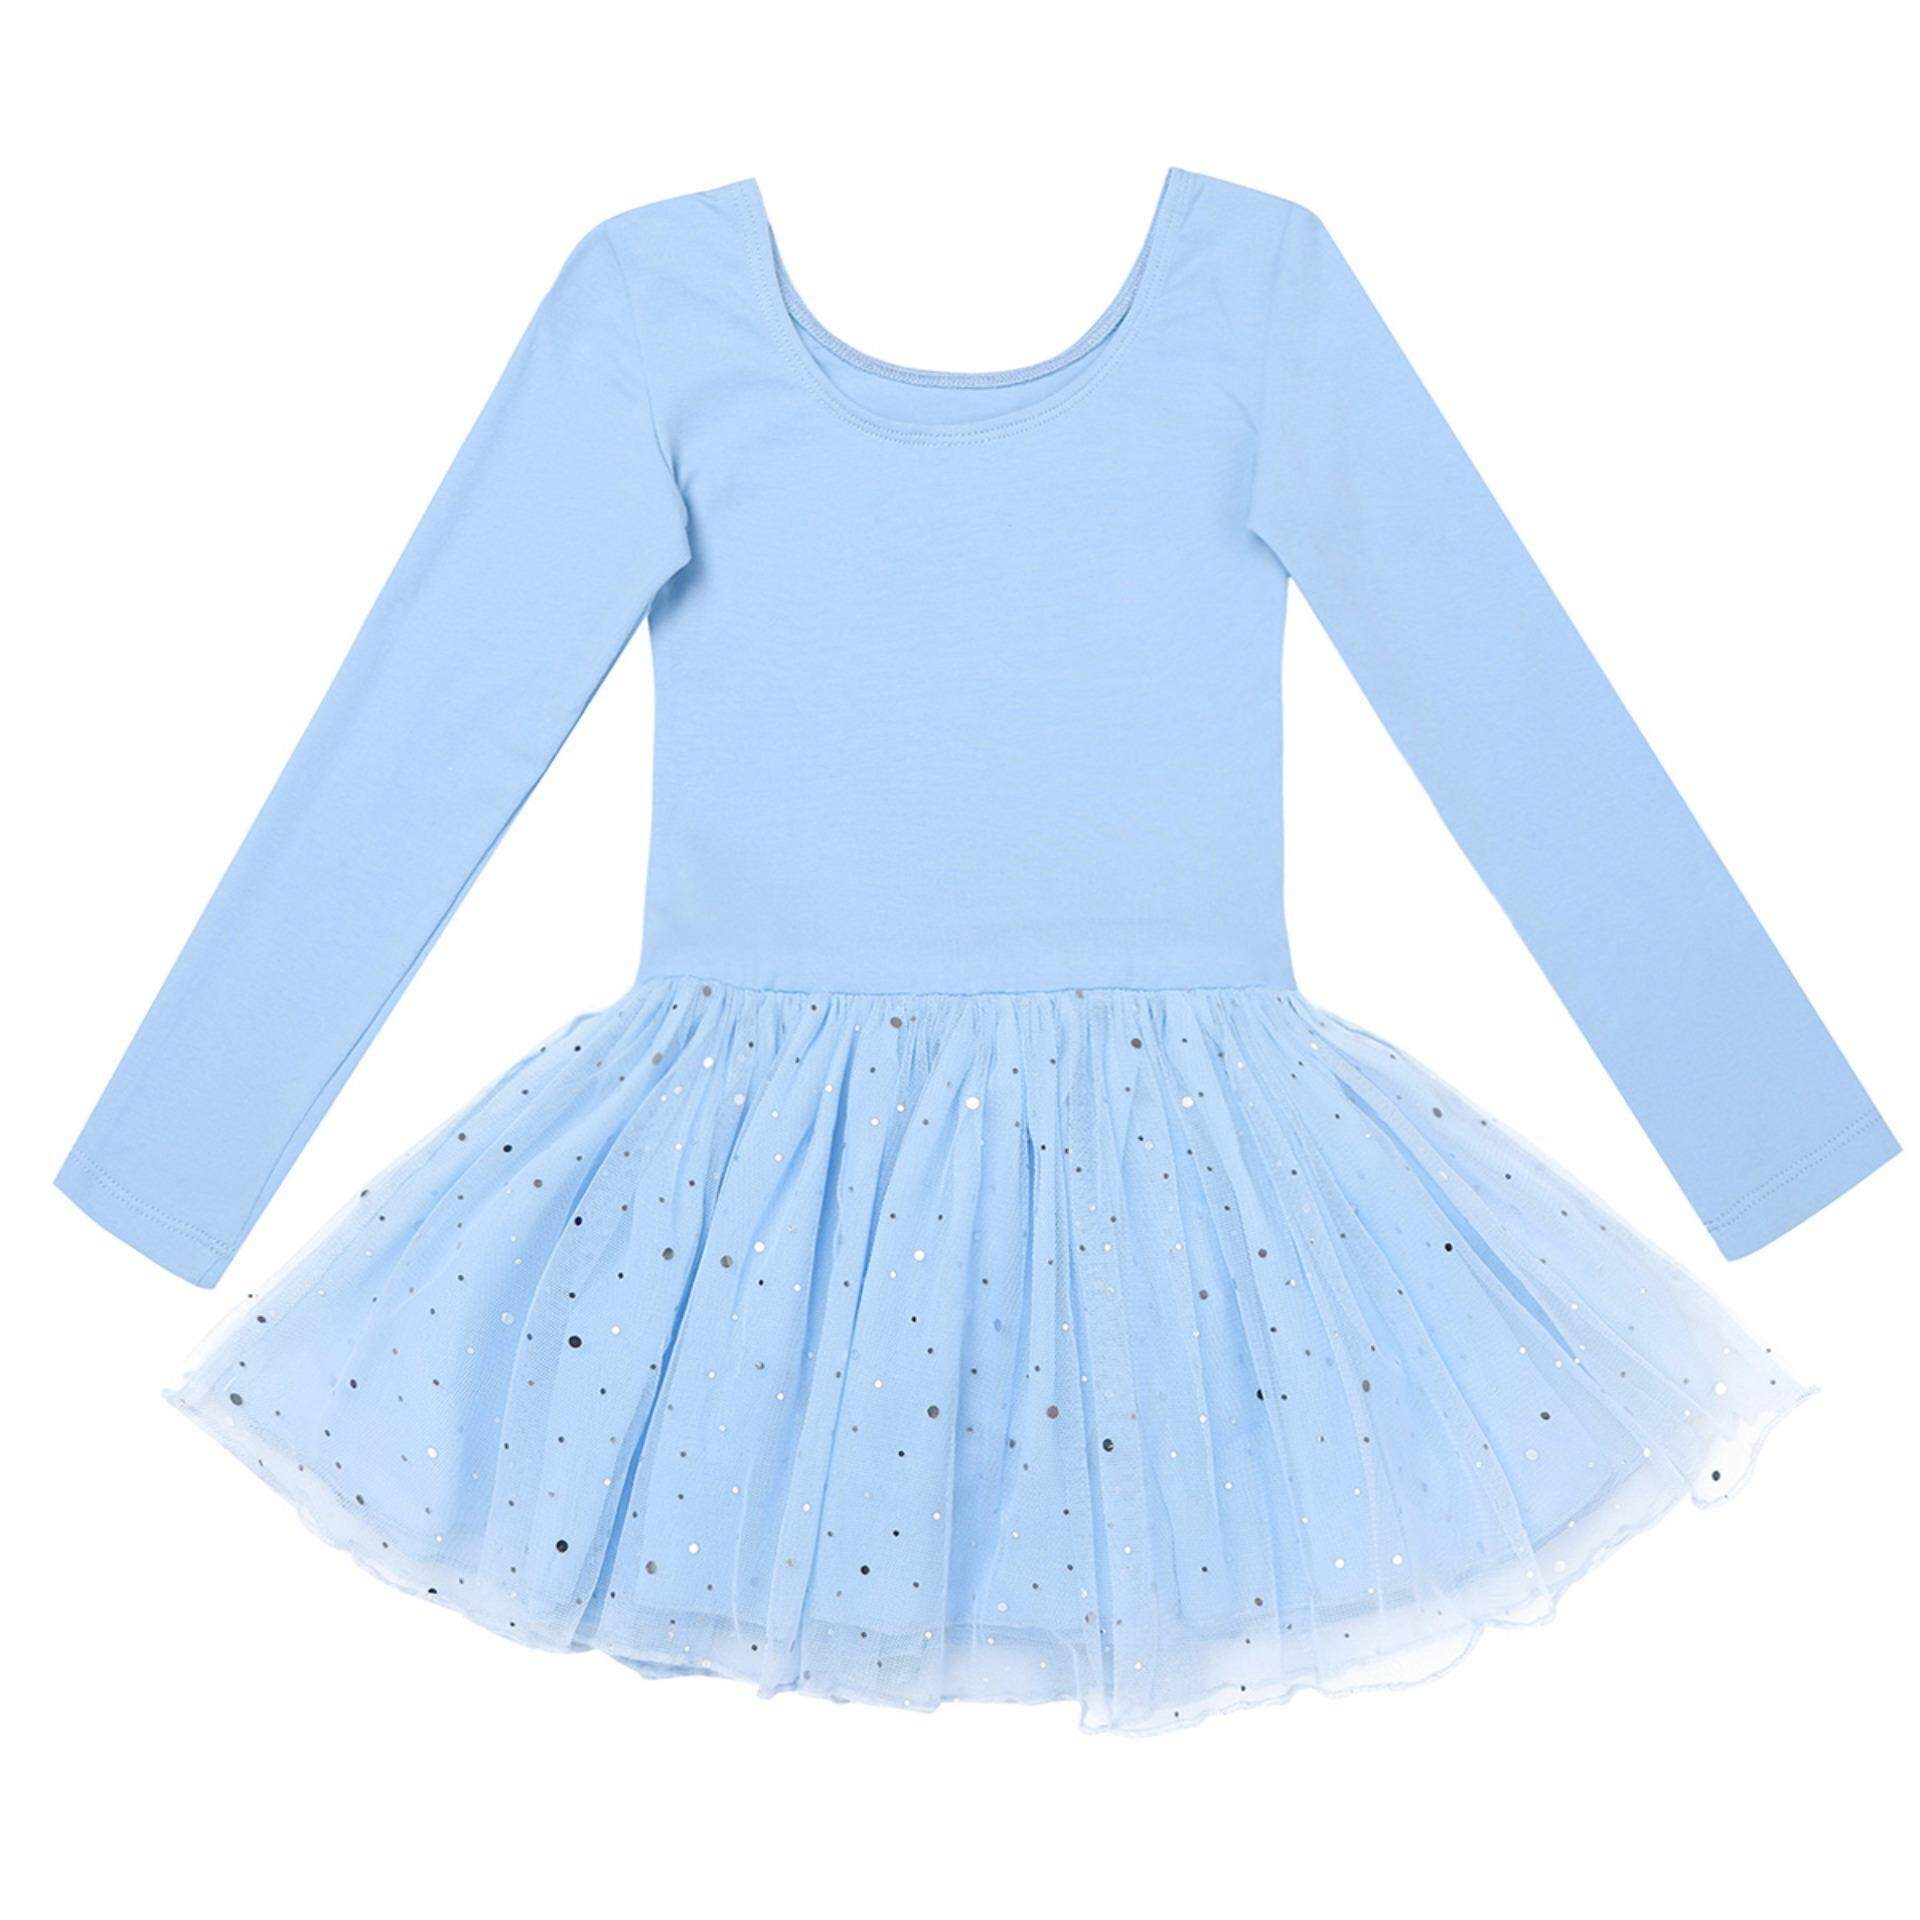 68f954c9e Sports Dress for Girls for sale - Athletic Dress for Girls online ...